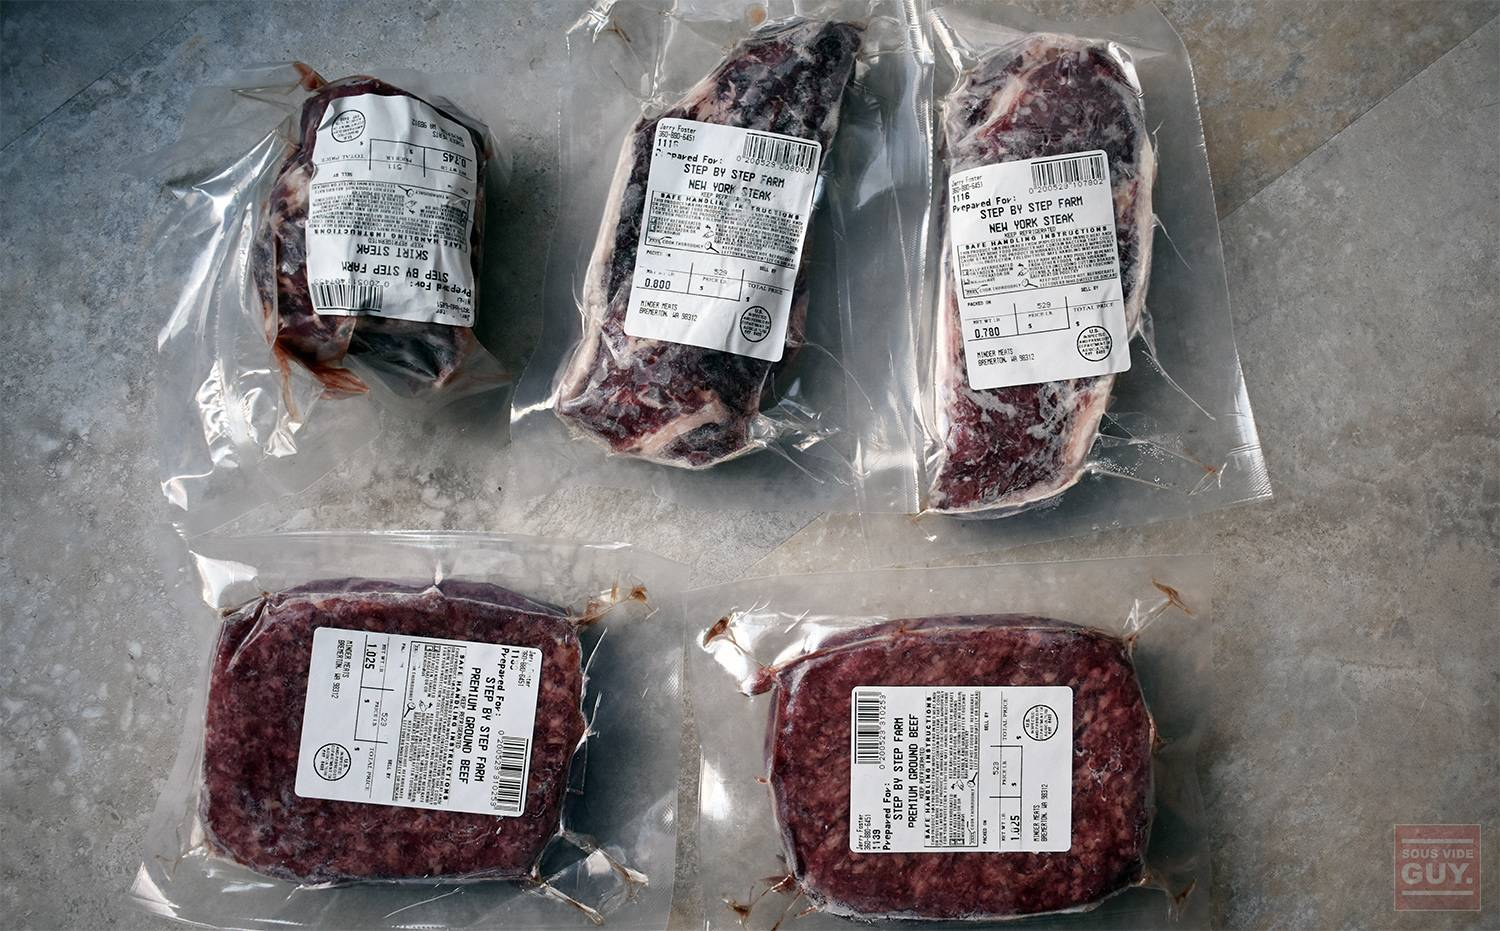 The meat I received from Crowd Cow